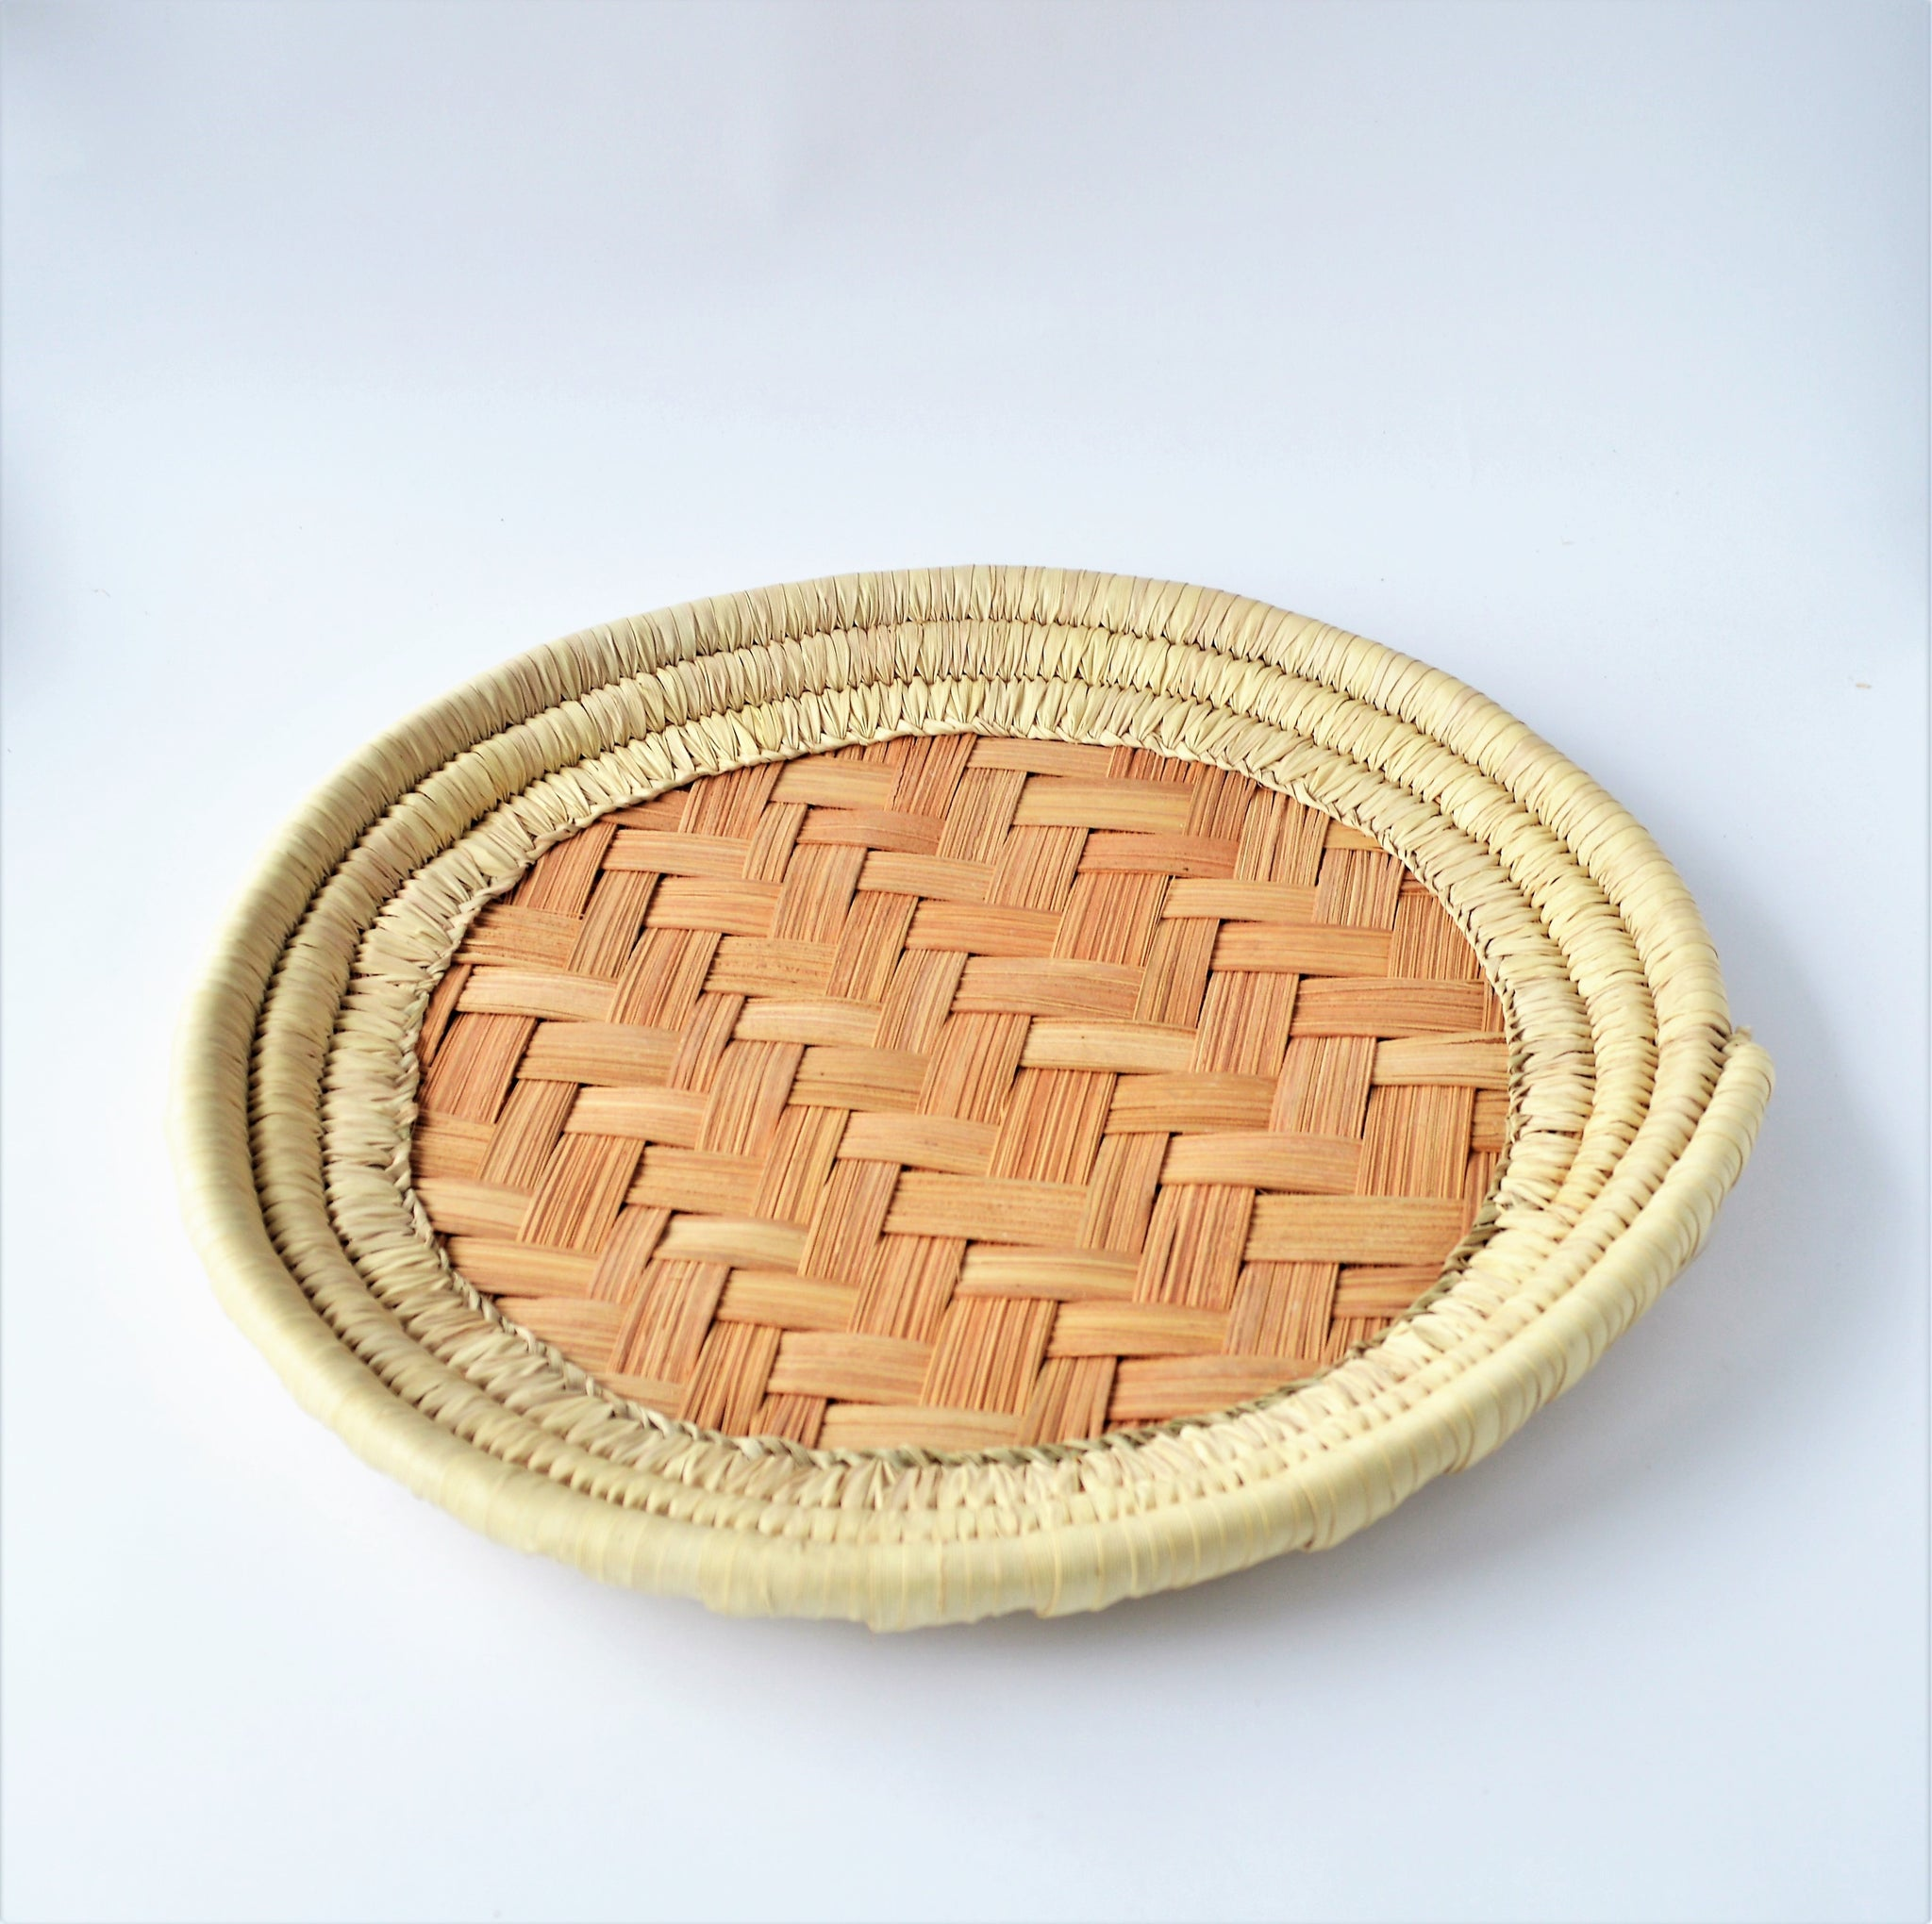 Round hand-woven bread basket (made of palm leaves)